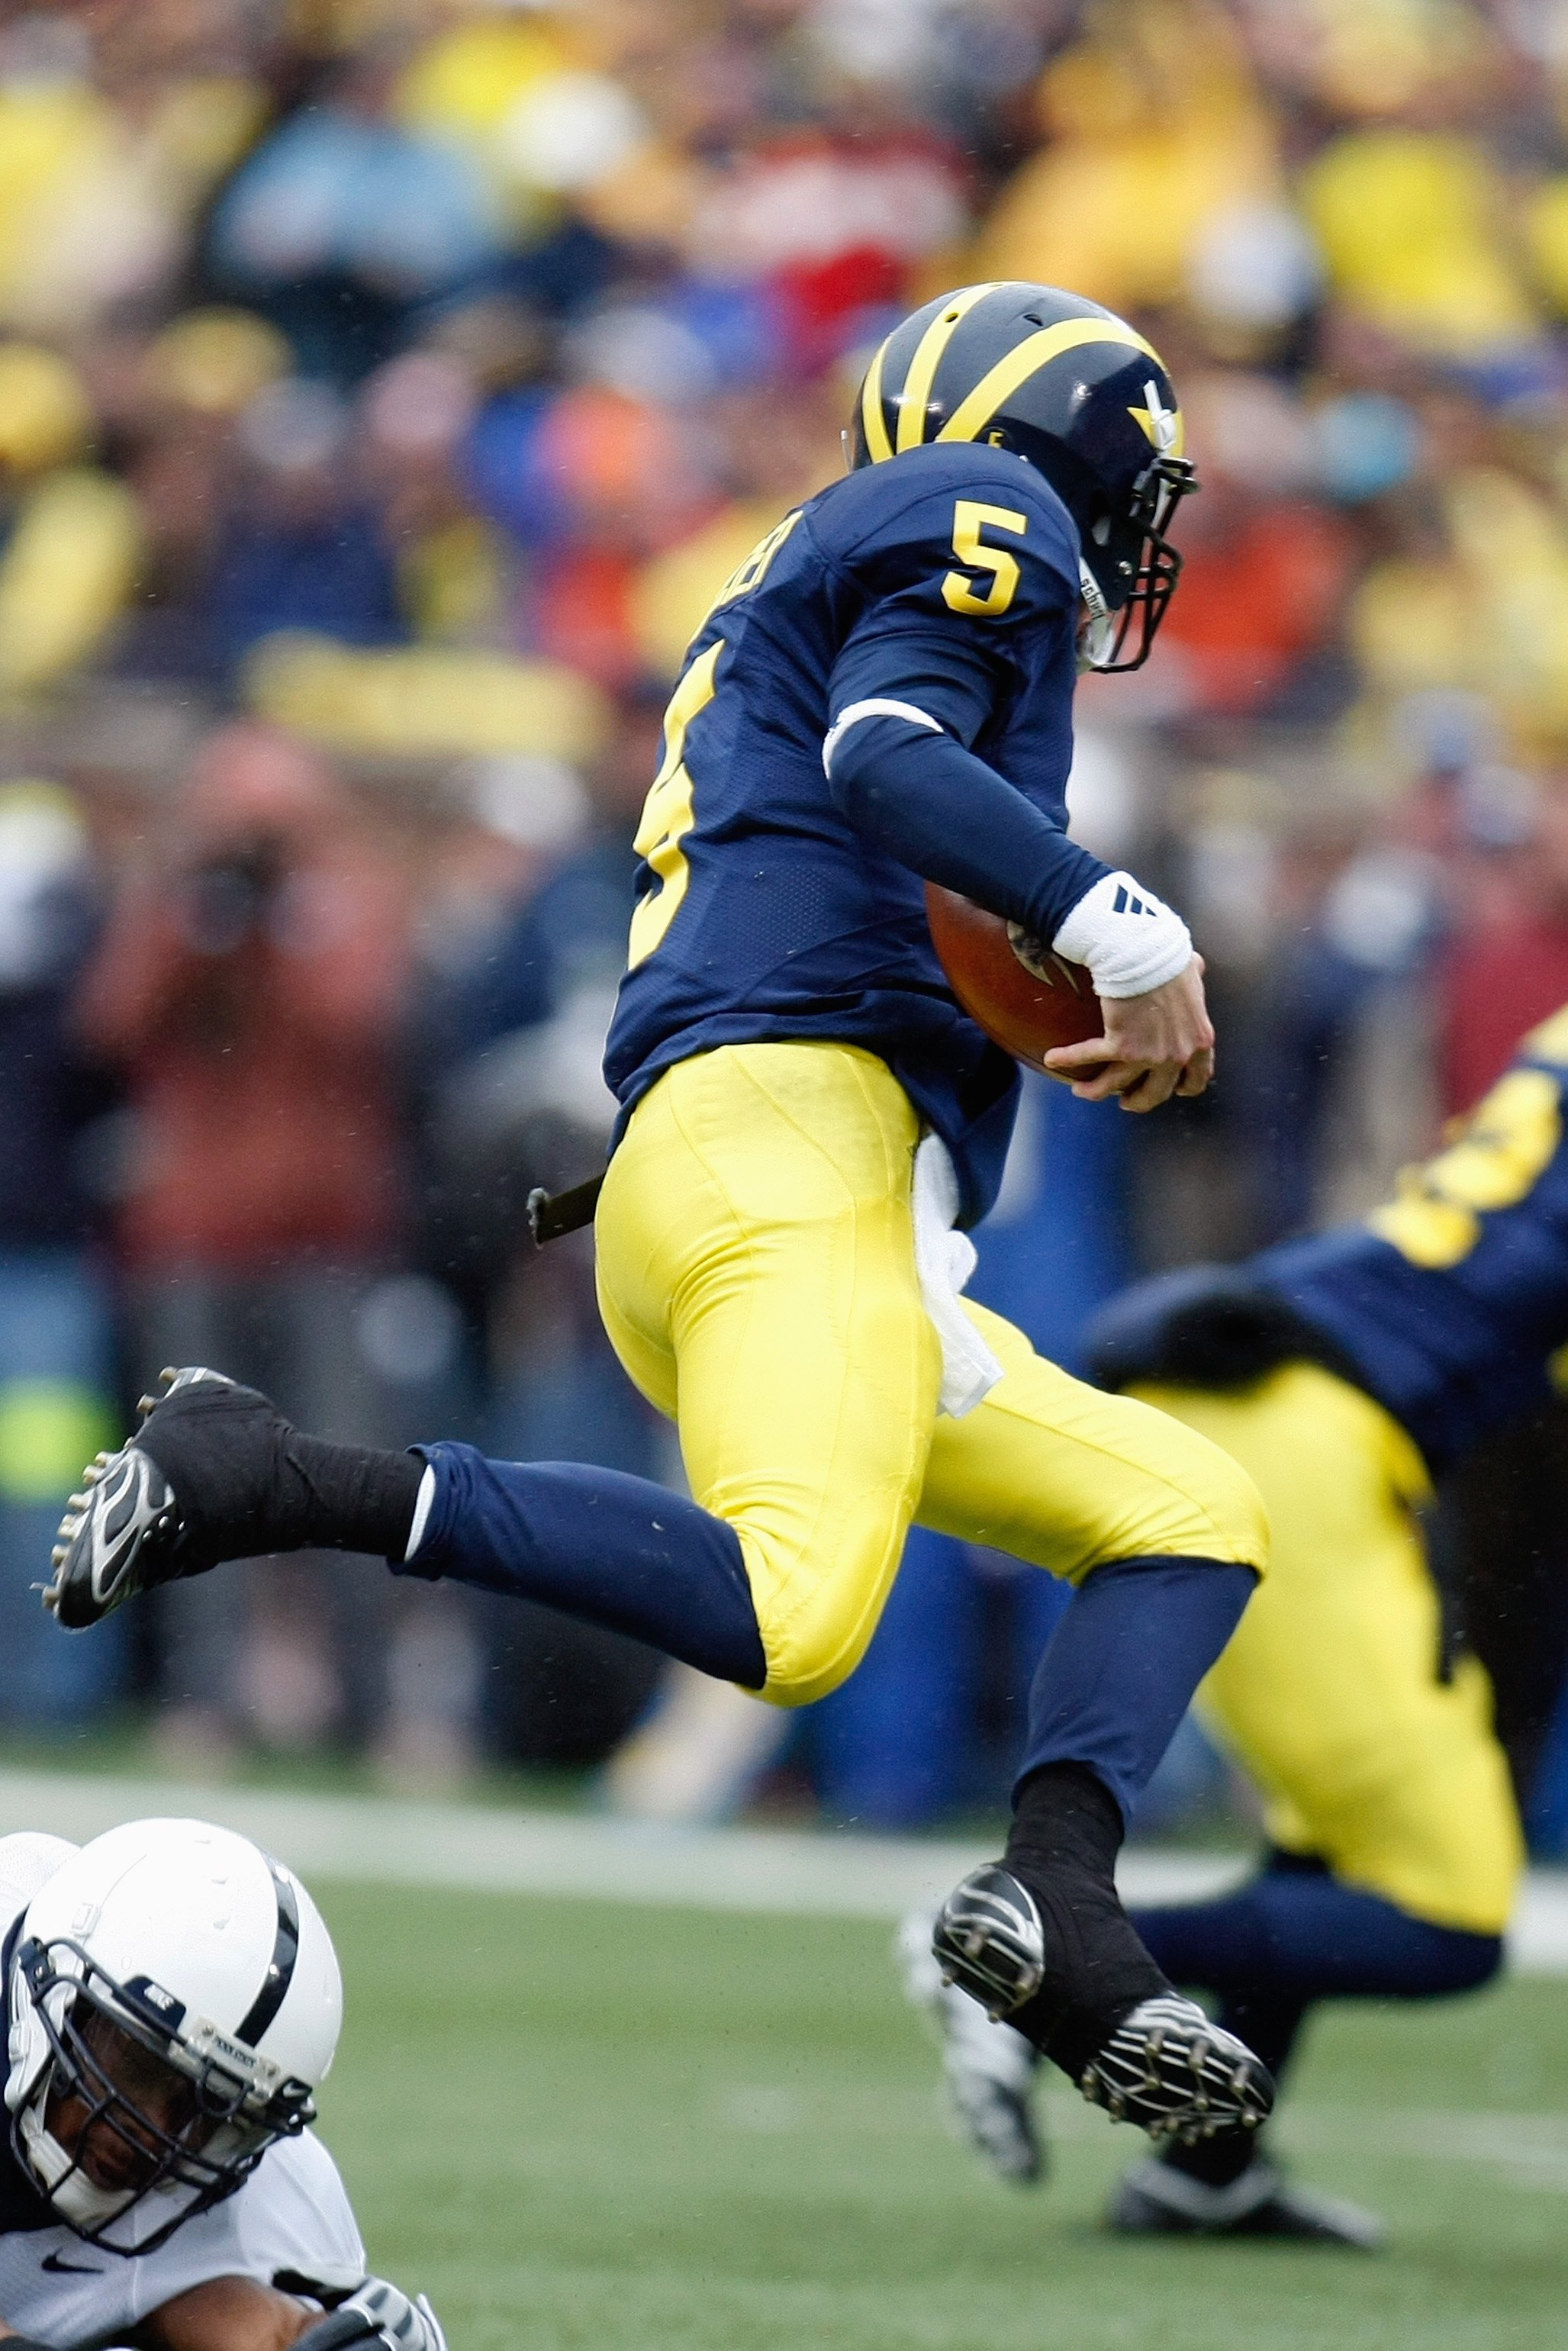 ANN ARBOR, MI - OCTOBER 24:  Tate Forcier #5 of the Michigan Wolverines carries the ball during the game against the Penn State Nittany Lions on October 24, 2009 at Michigan Stadium in Ann Arbor, Michigan. (Photo by  Gregory Shamus/Getty Images)